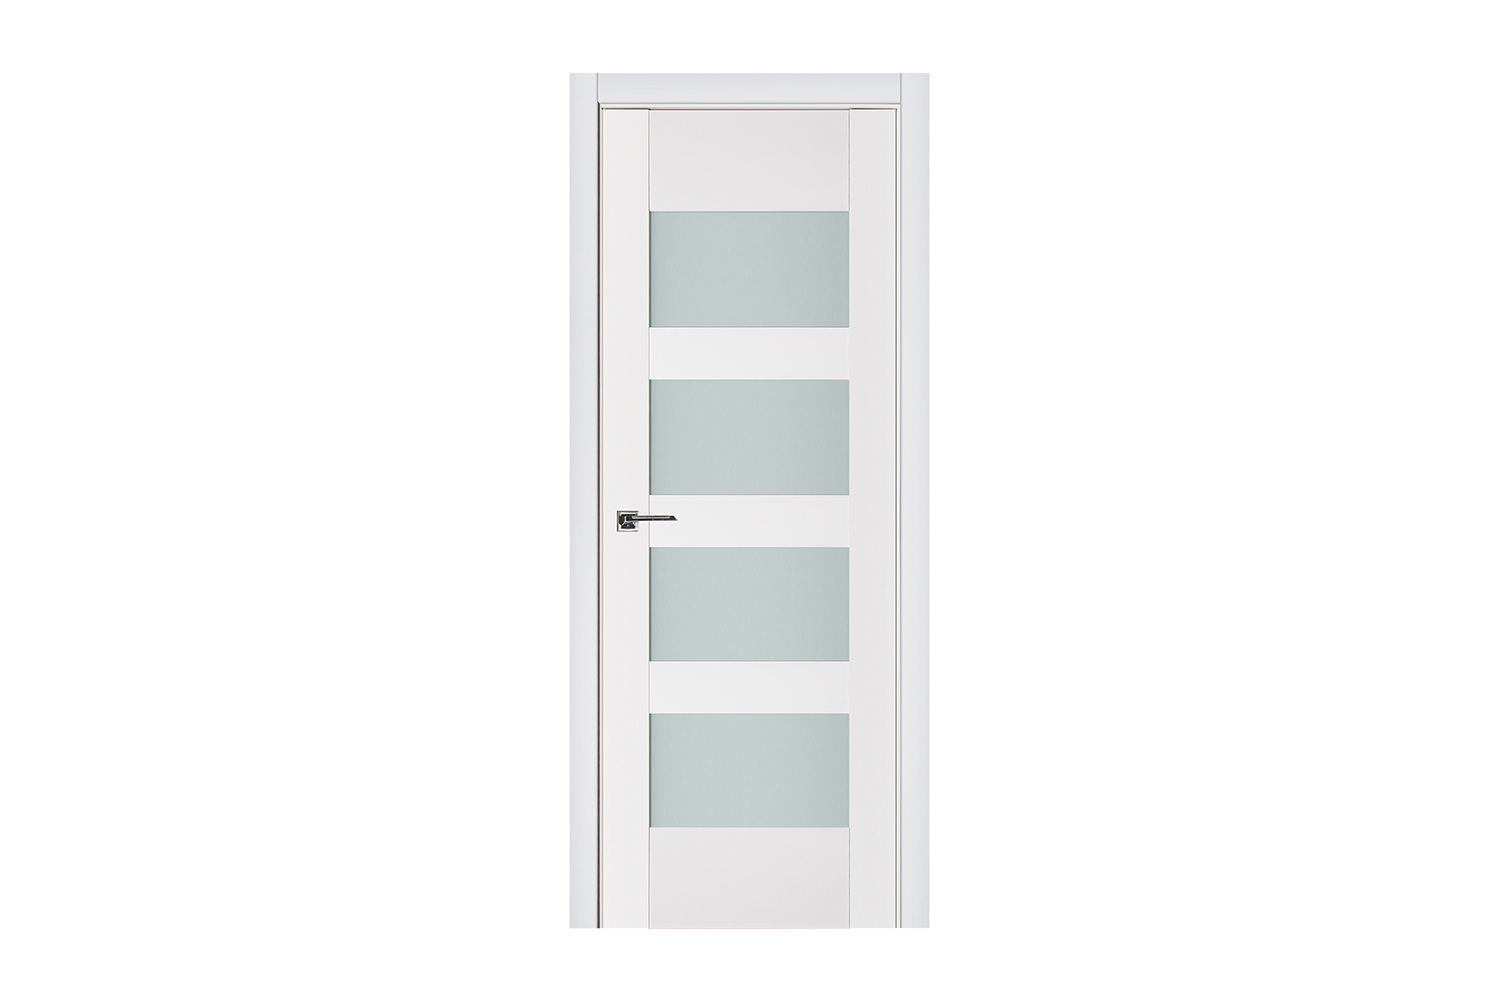 Triplex 035 White Wood Lacquered Modern Interior Door  sc 1 st  Nova Hardware & Triplex 035 White Wood Lacquered Modern Interior Door u2013 Nova ...